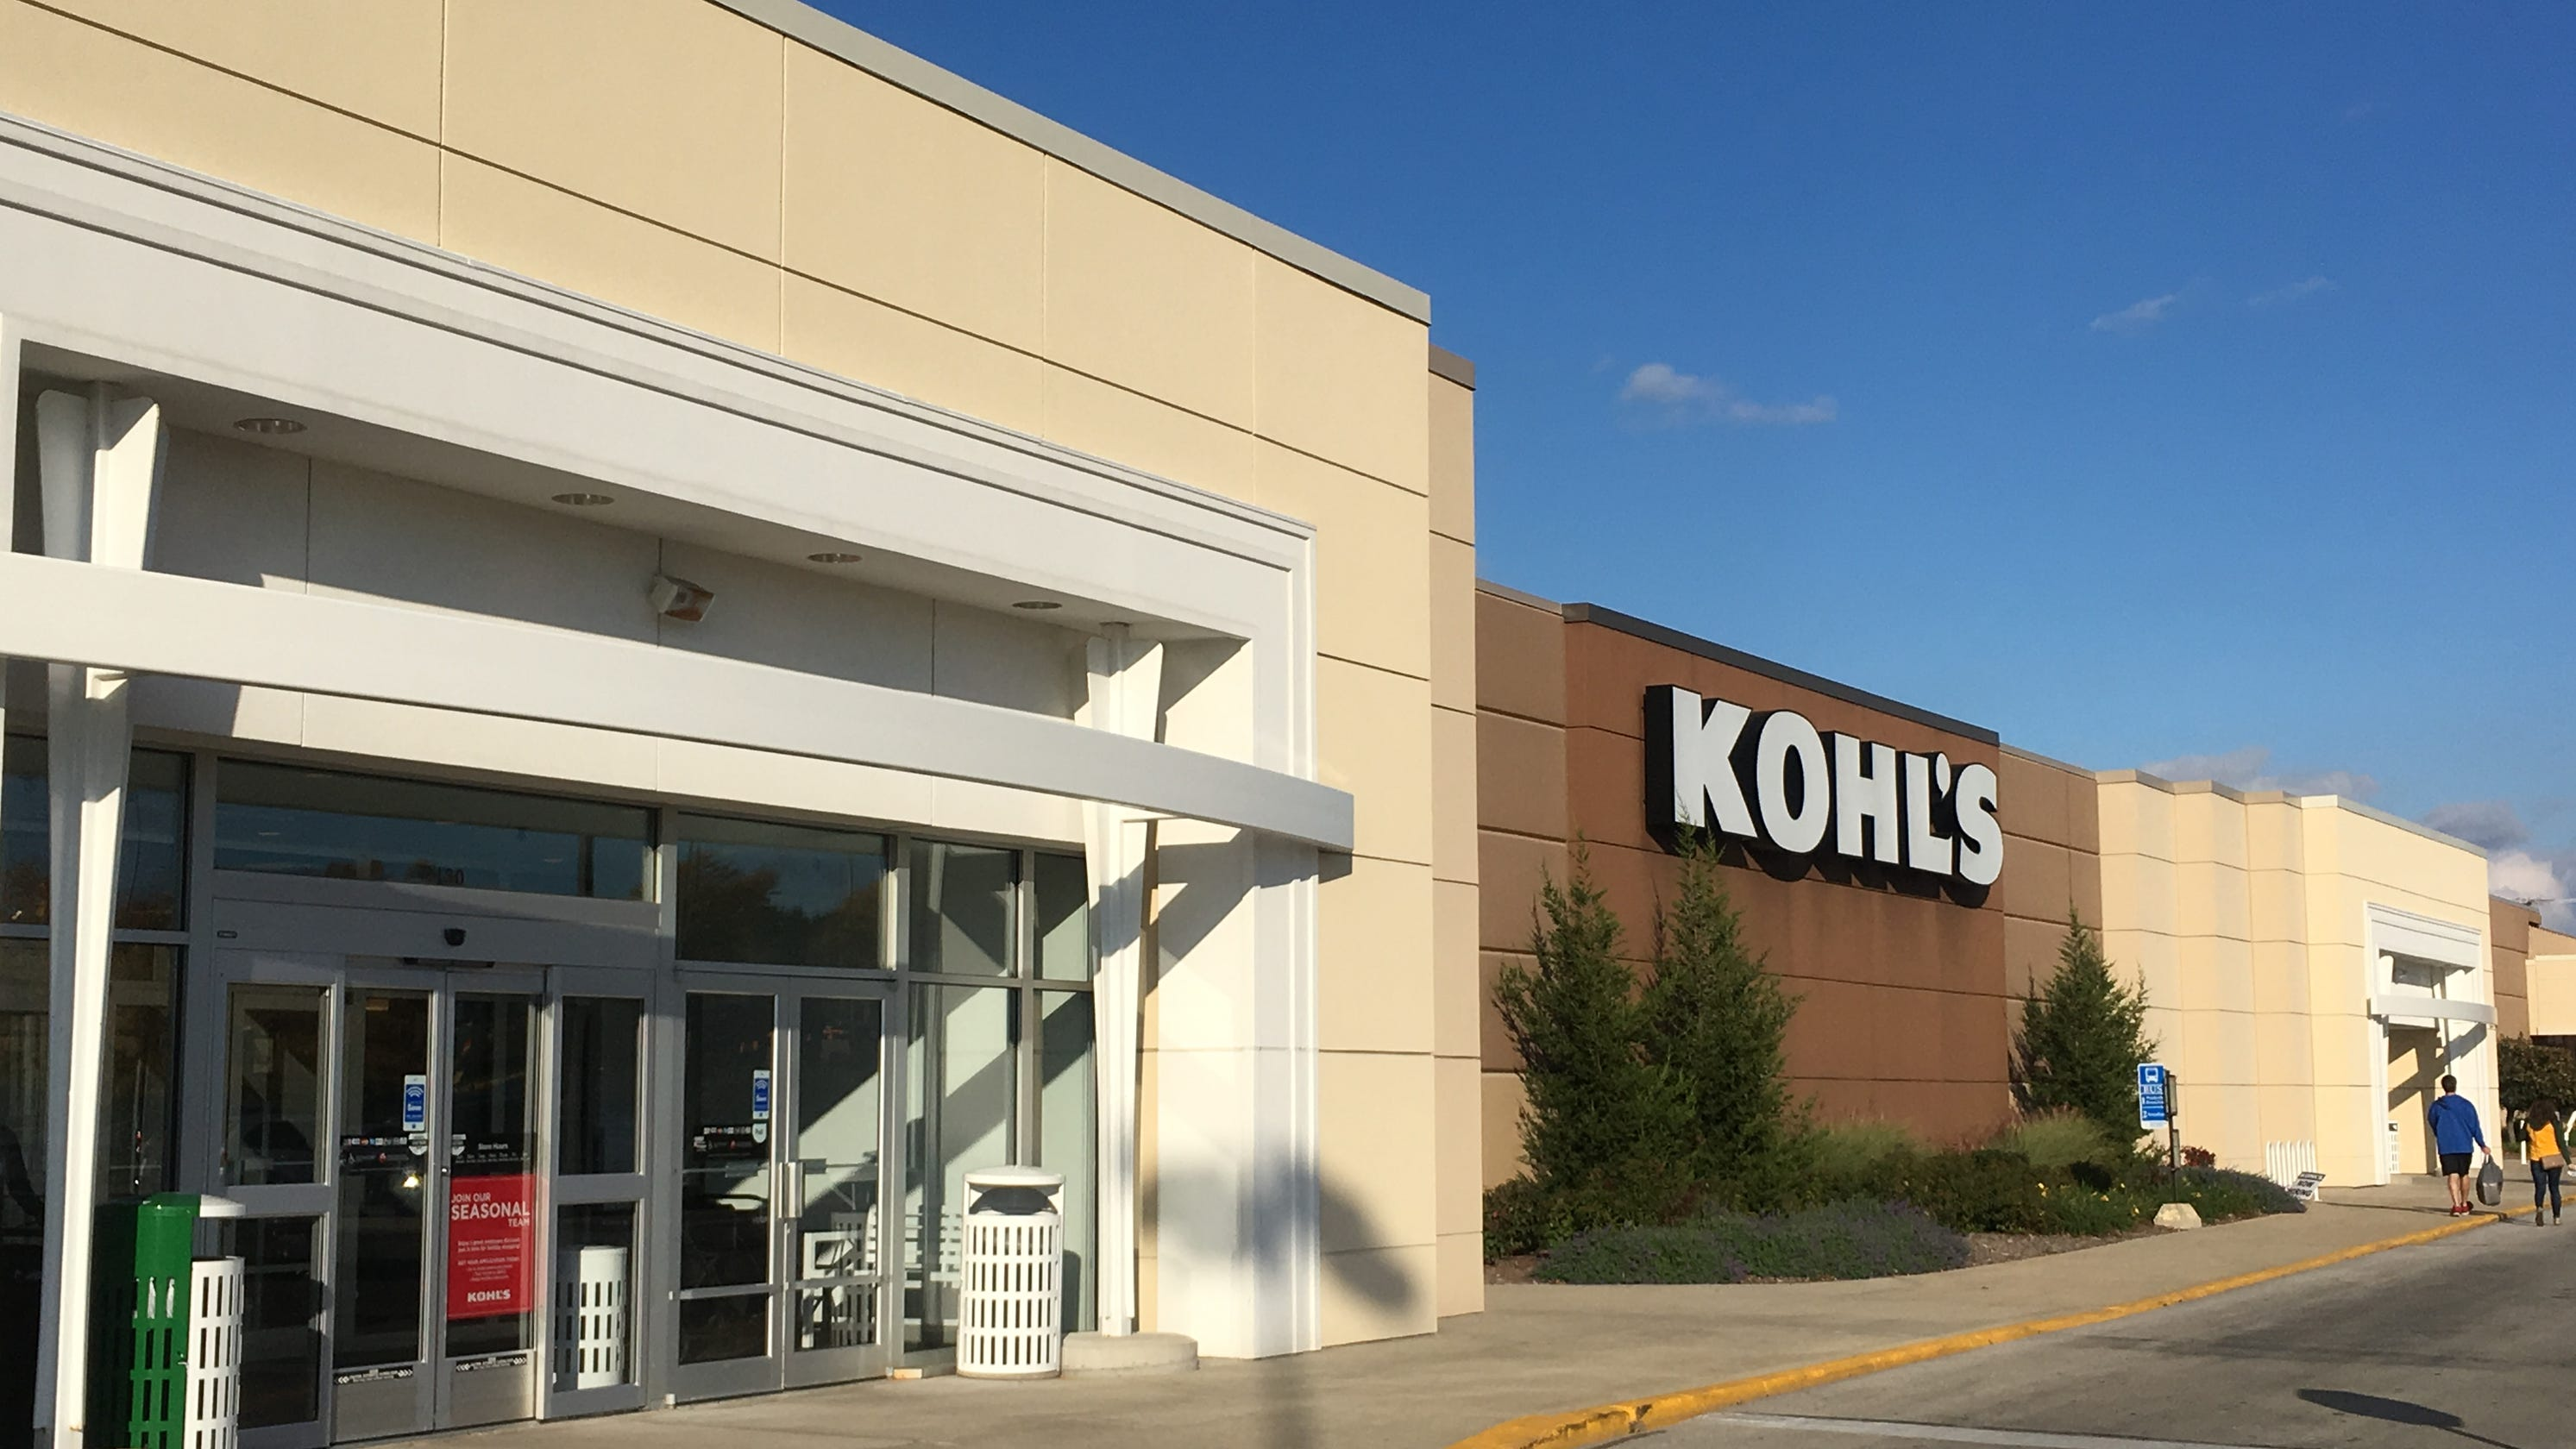 Kohl's reducing its corporate workforce by 15% as a cost-cutting measu... image